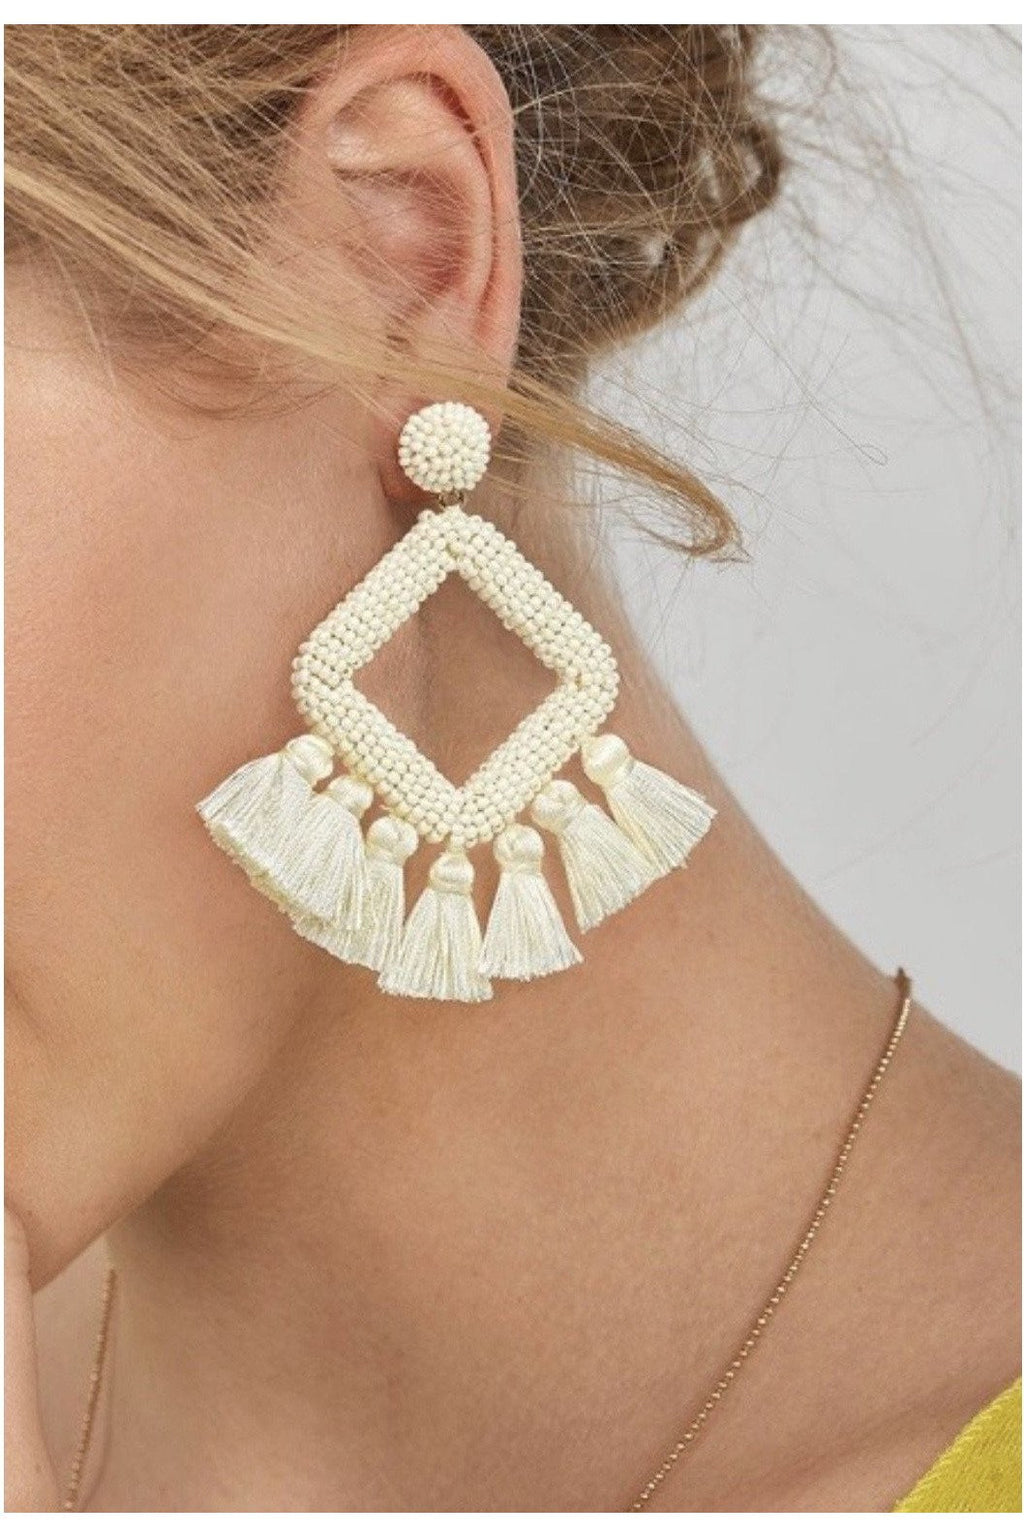 Cay Sal Earrings in Ivory - Indigo Closet